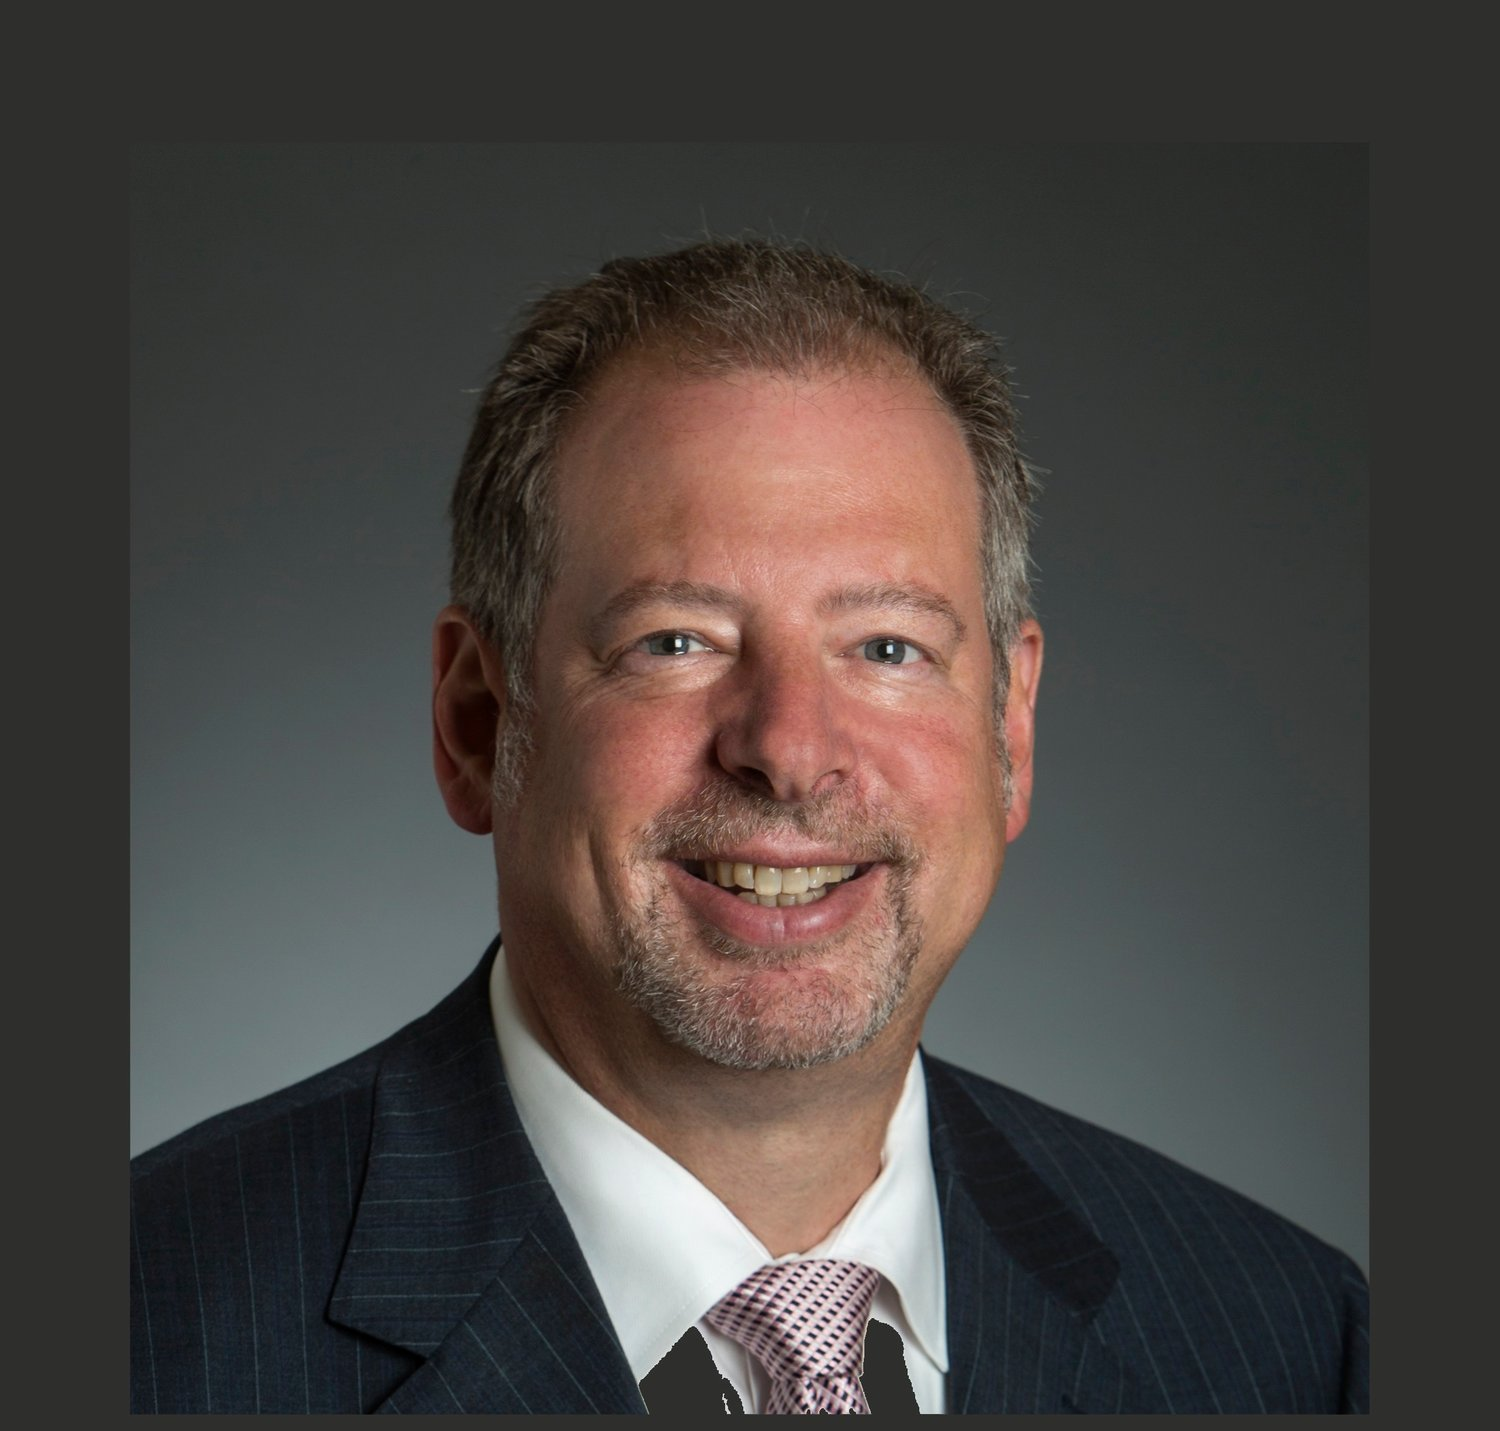 Joe Freudenberger is CEO at OakBend Medical Center. In a recent interview with the Katy Times, he expressed confidence in the upcoming COVID-19 vaccines and discussed advances in treatment of the disease over the last year.